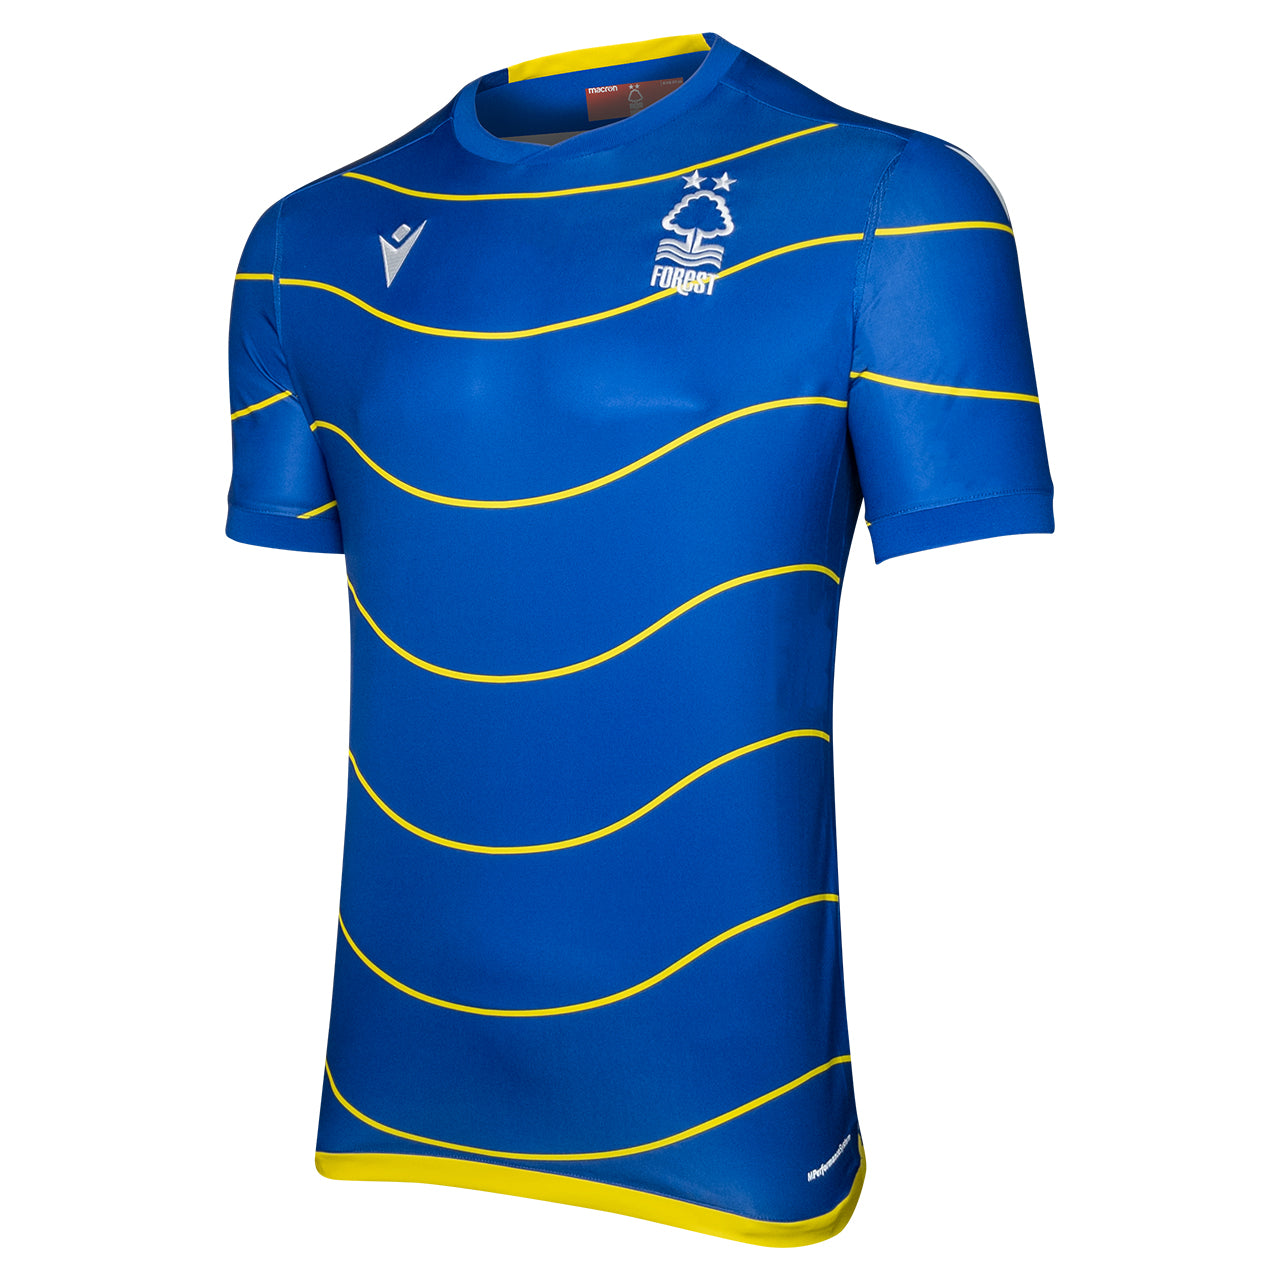 NFFC Junior Away Shirt 2020/21